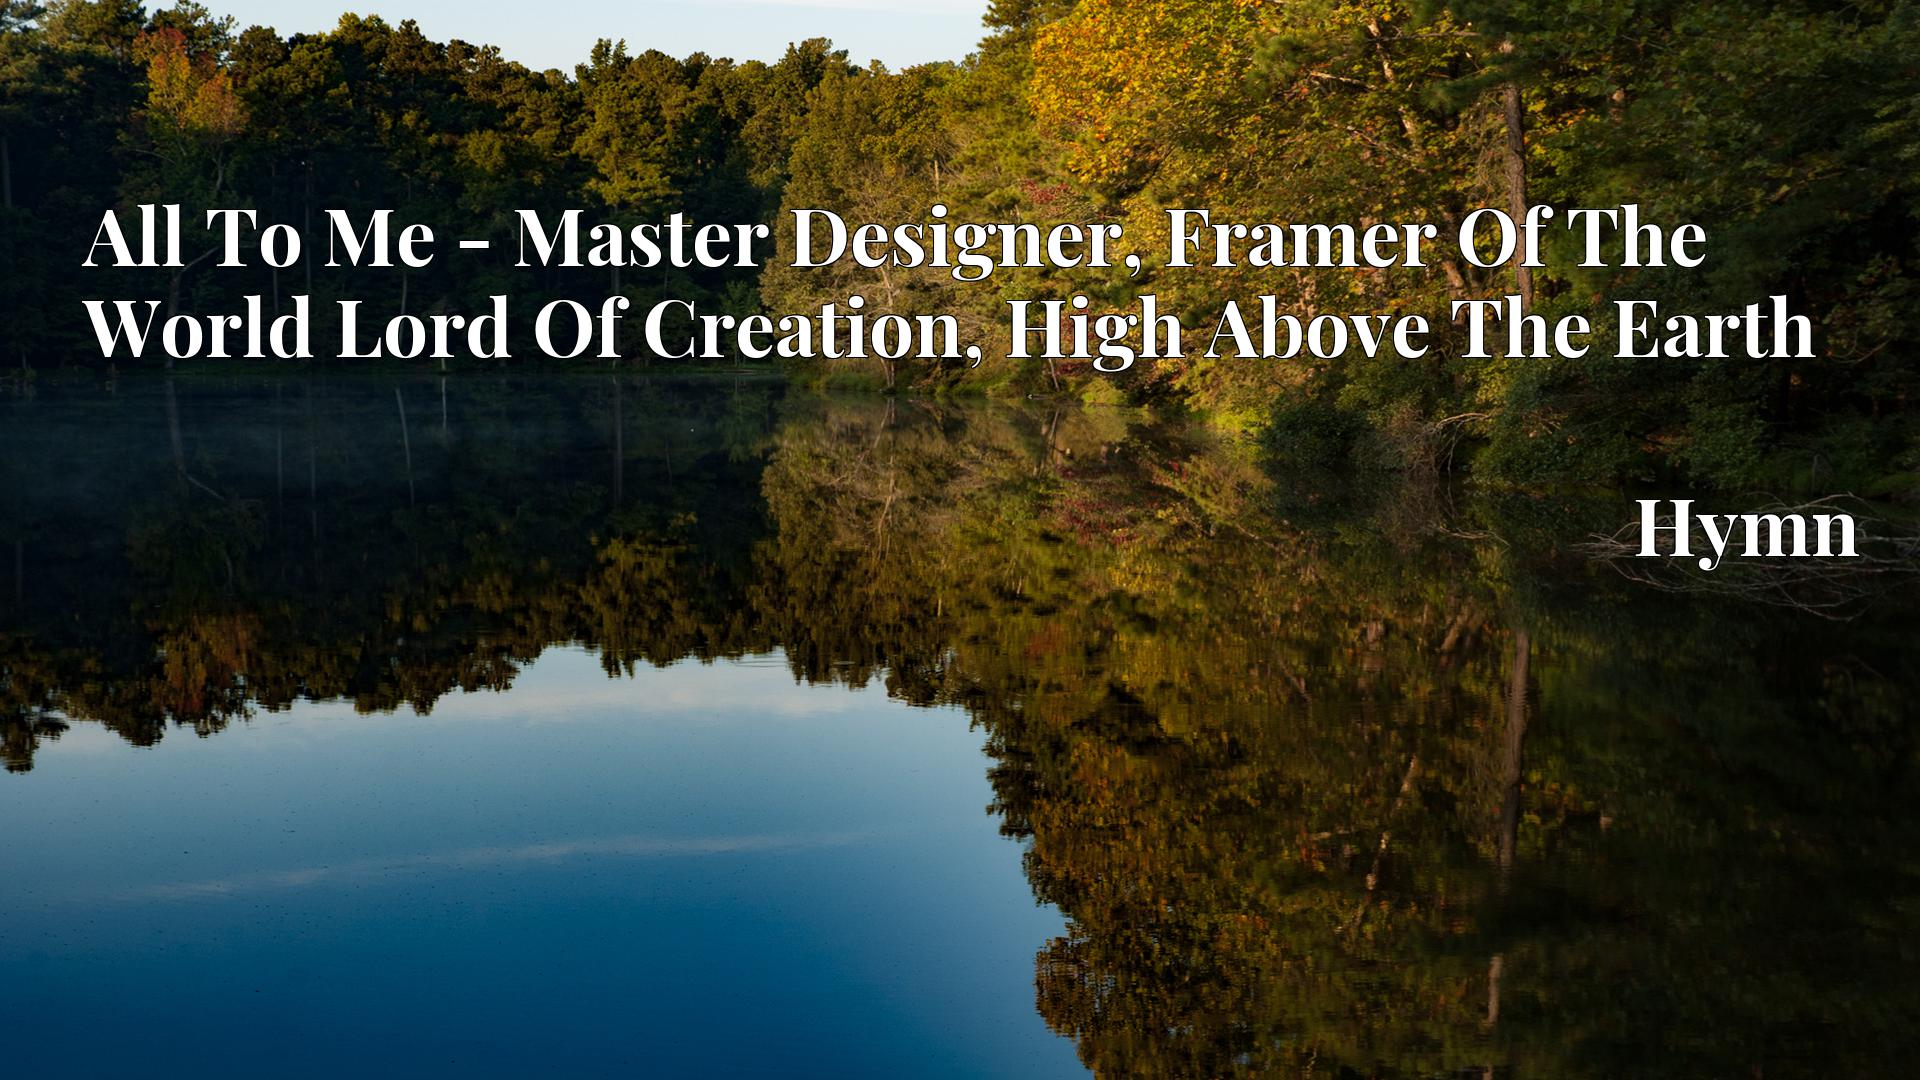 All To Me - Master Designer, Framer Of The World Lord Of Creation, High Above The Earth - Hymn